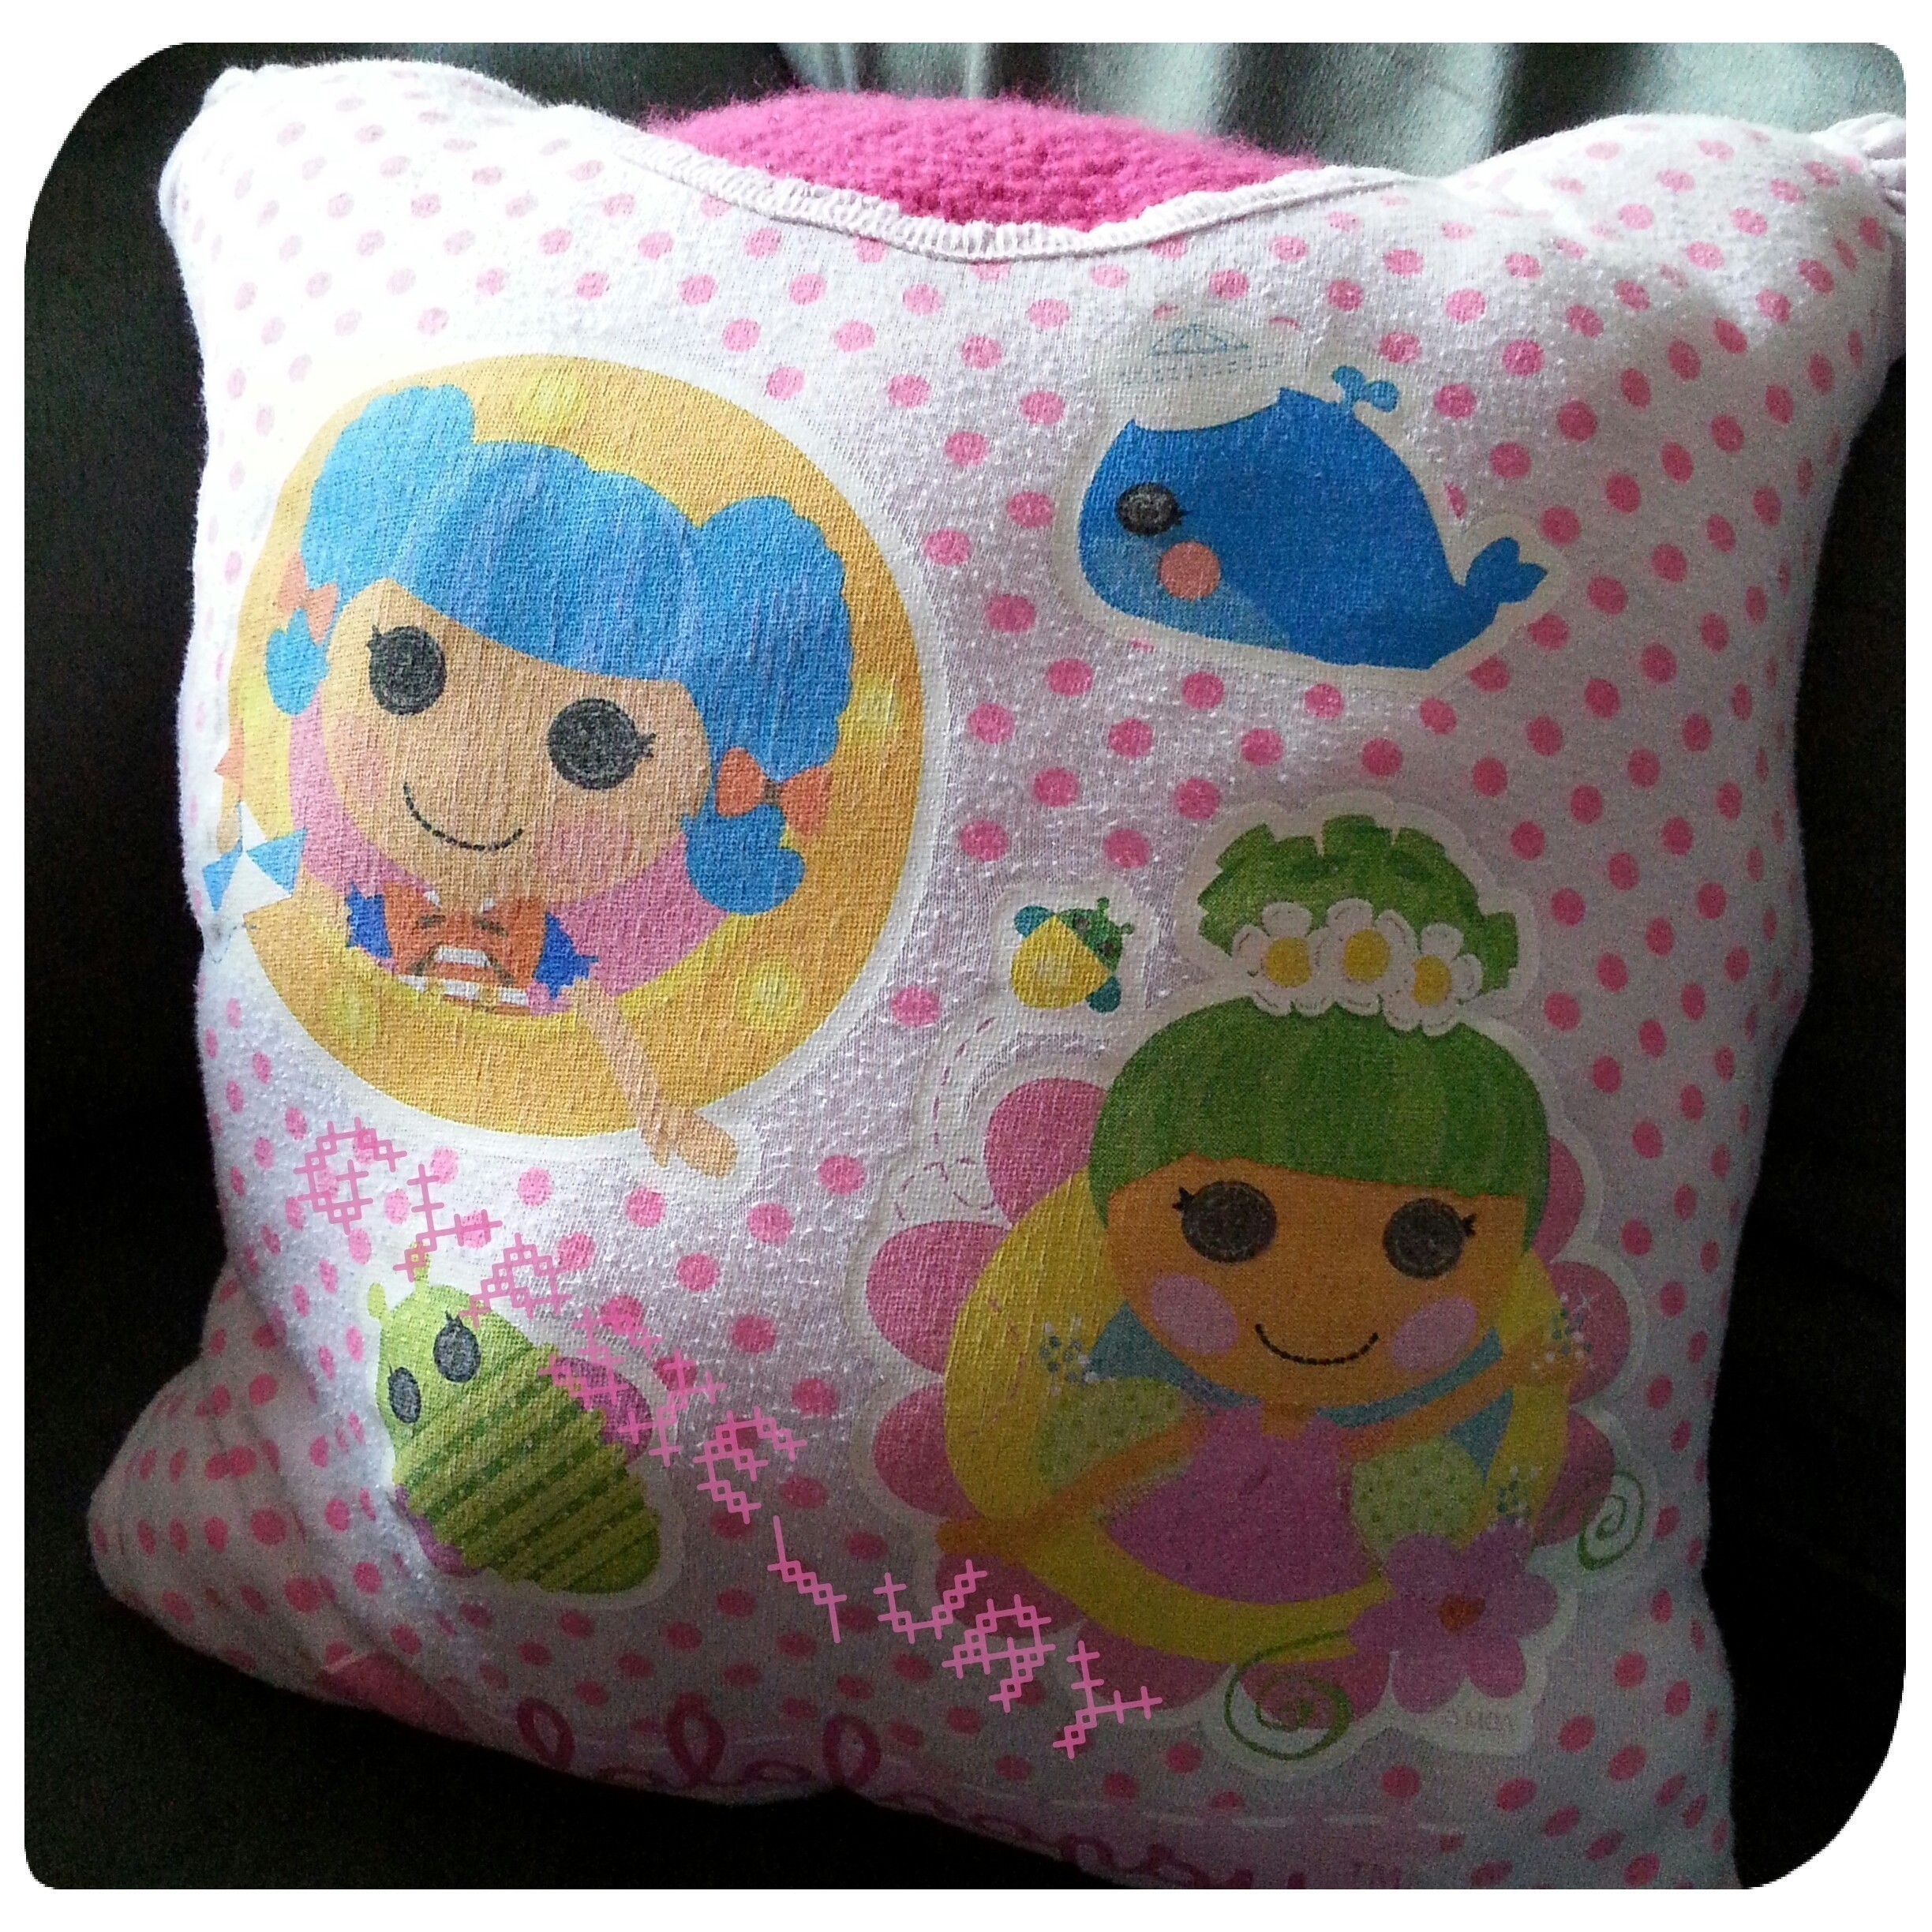 Lalaloopsy T Shirt Pillow ? A Recycled Cushion ? Sewing on Cut Out + Keep